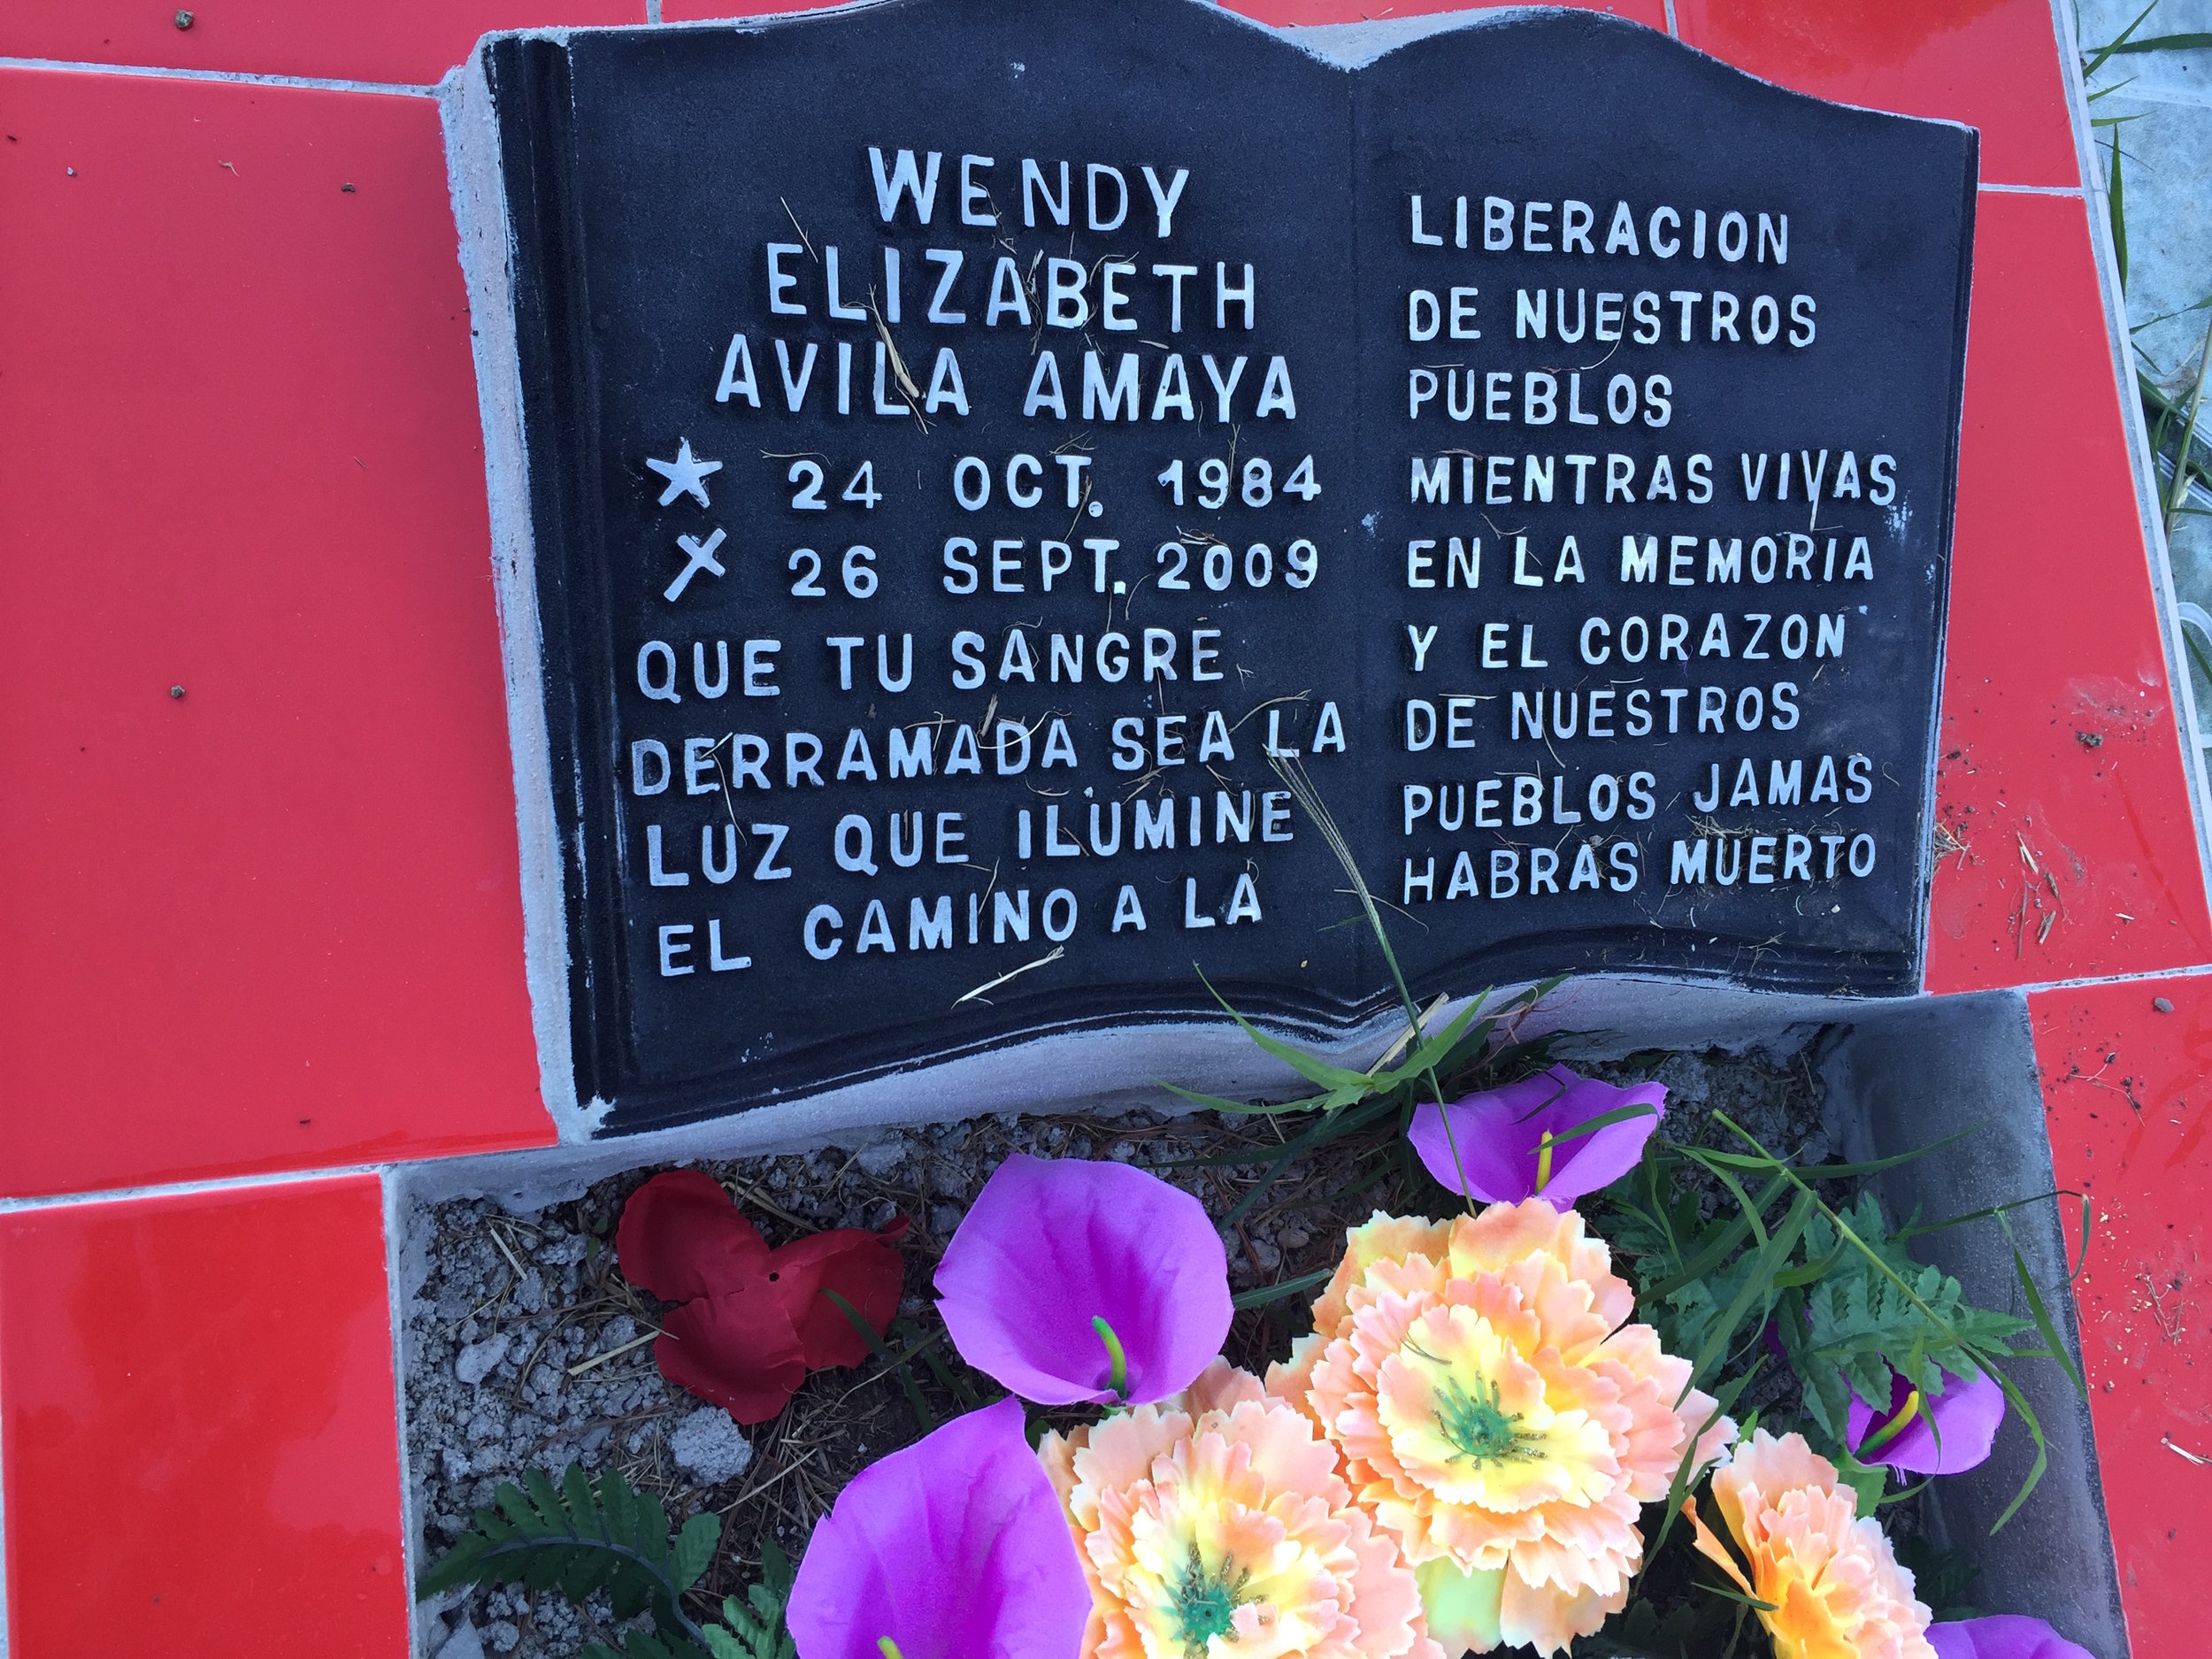 """Wendy's grave stone: """"October 24, 1984 to September 26, 2009. Let your spilled blood be the light that illuminates the path to people's liberation. As long as you live in the minds and hearts of our people, you will never be dead."""""""